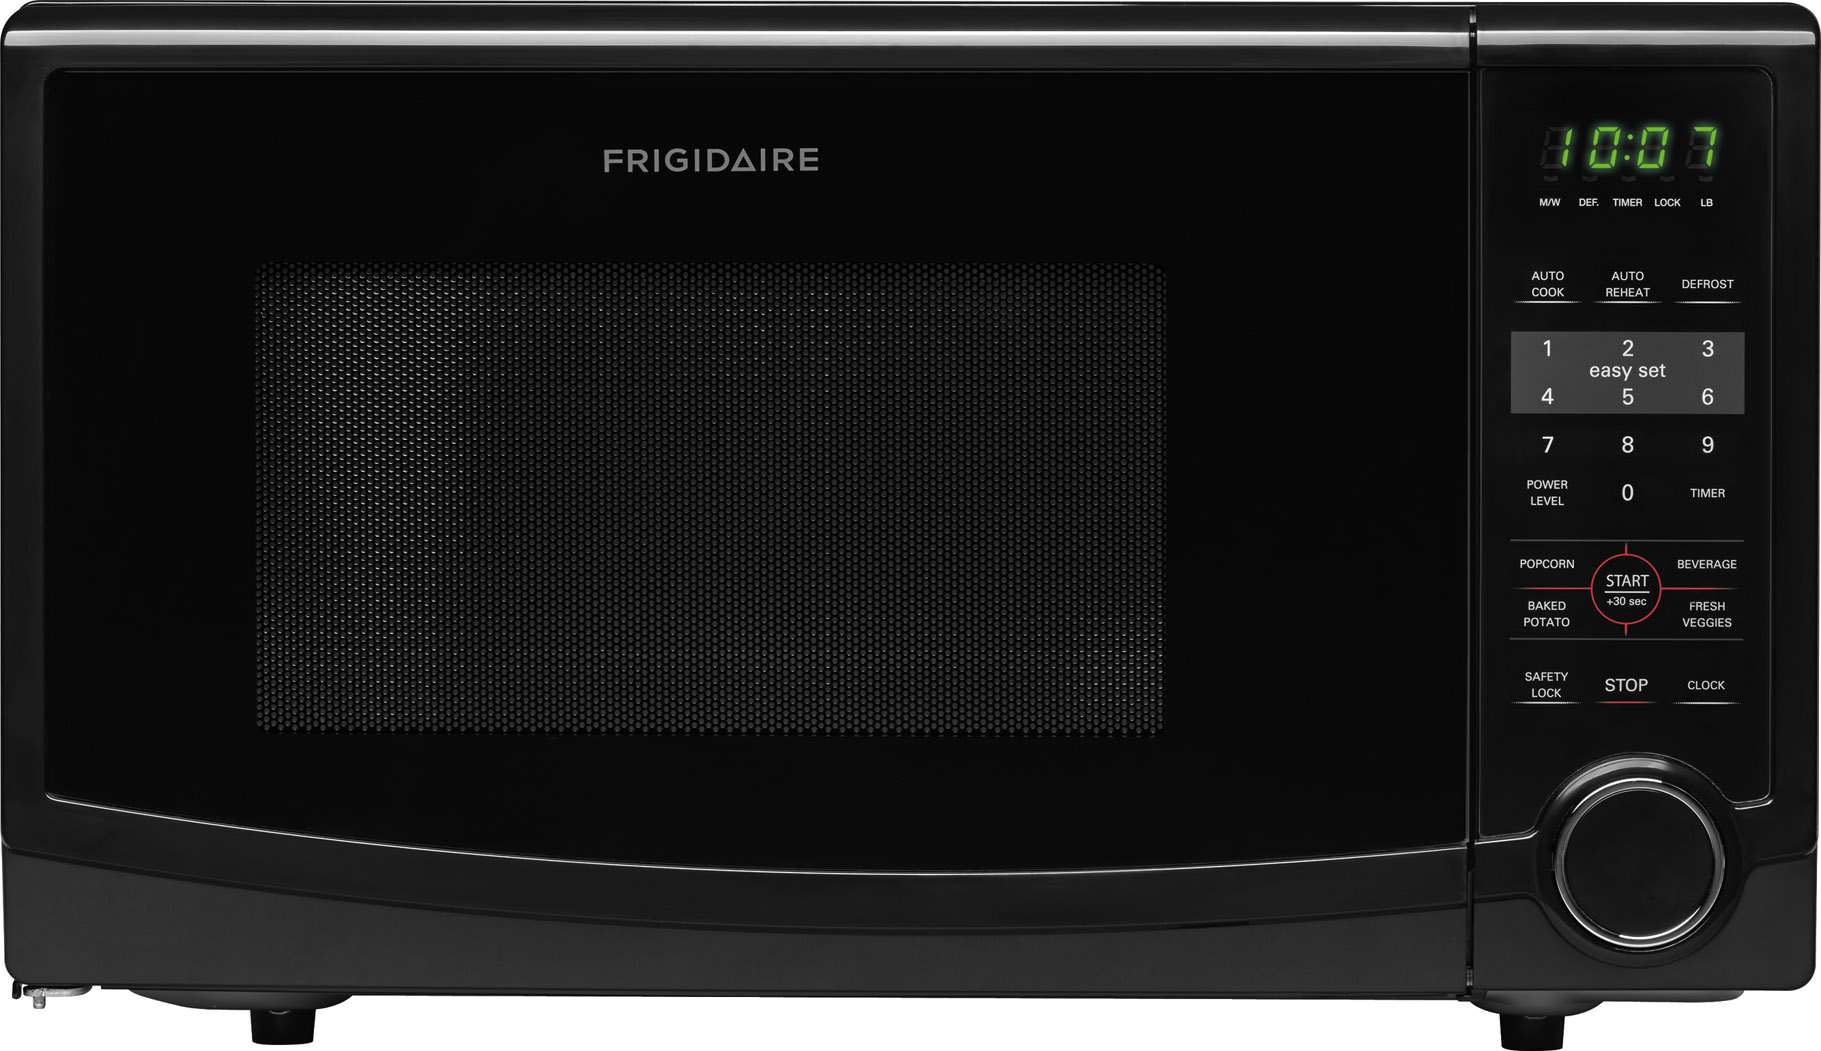 Frigidaire Microwave Model FFCM1134LB Parts